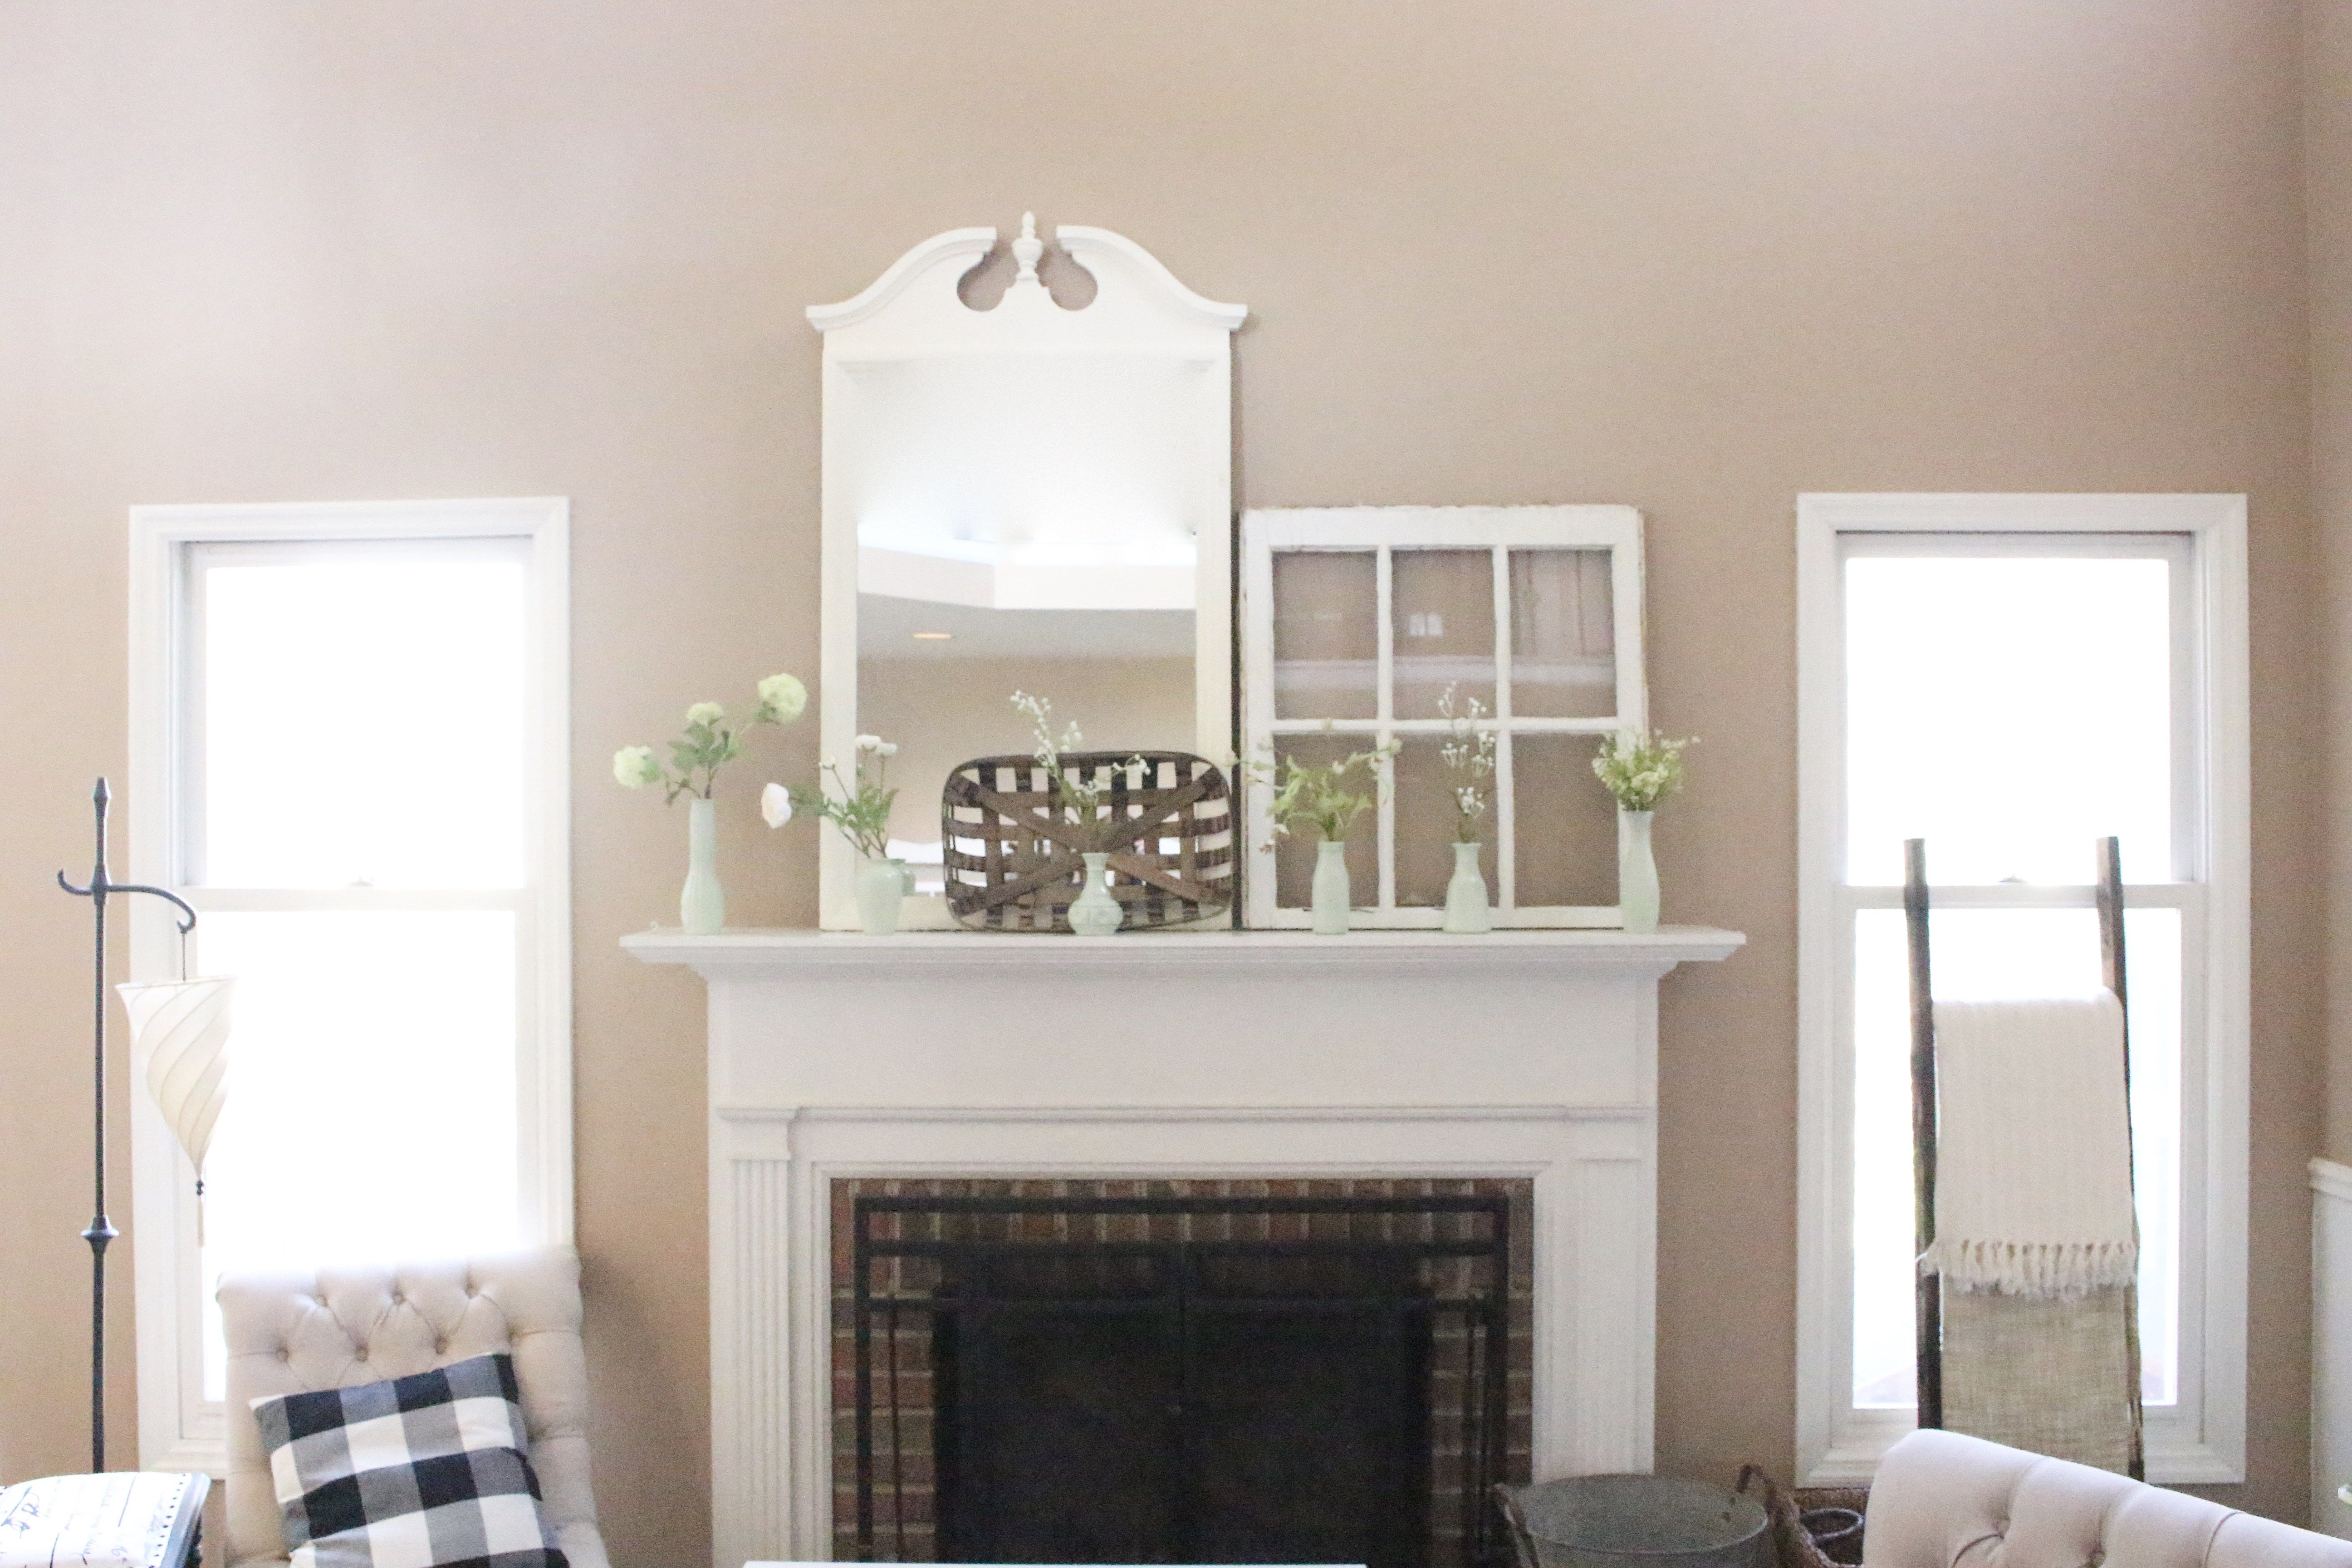 Decorate Your Mantel: Faux Milk Glass Mantel for Spring   Mantels ...